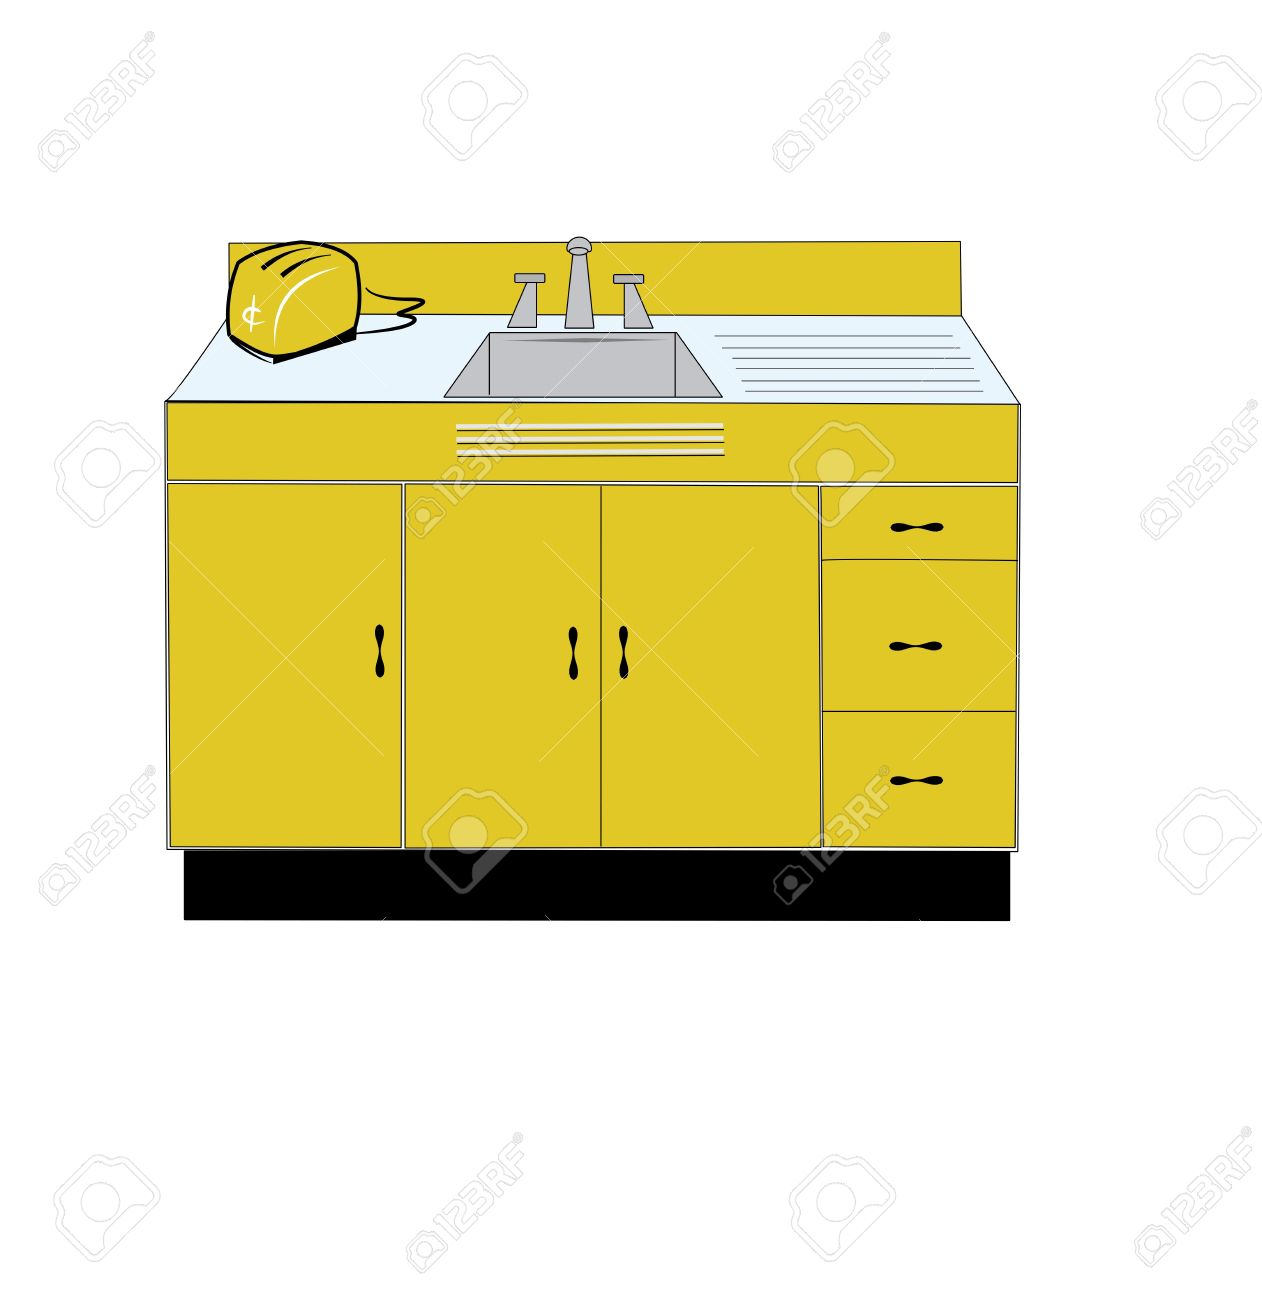 retro kitchen sink and toaster royalty free cliparts, vectors, and